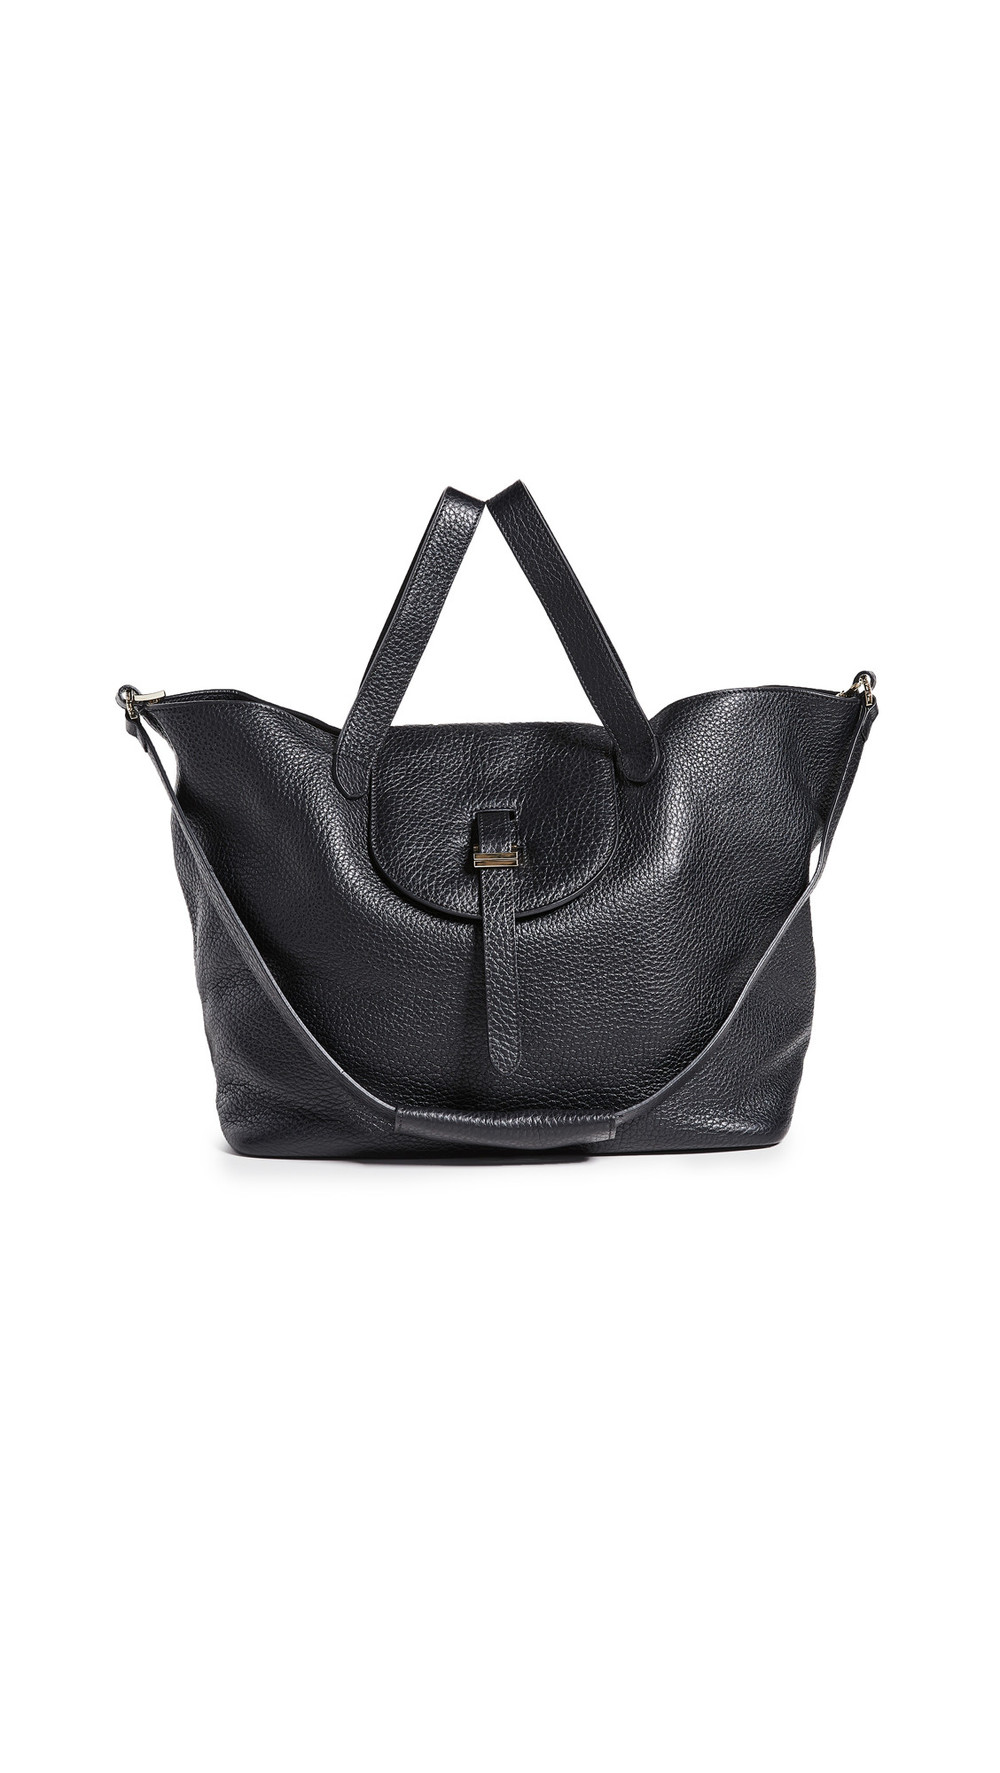 meli melo Thela Large Tote in black